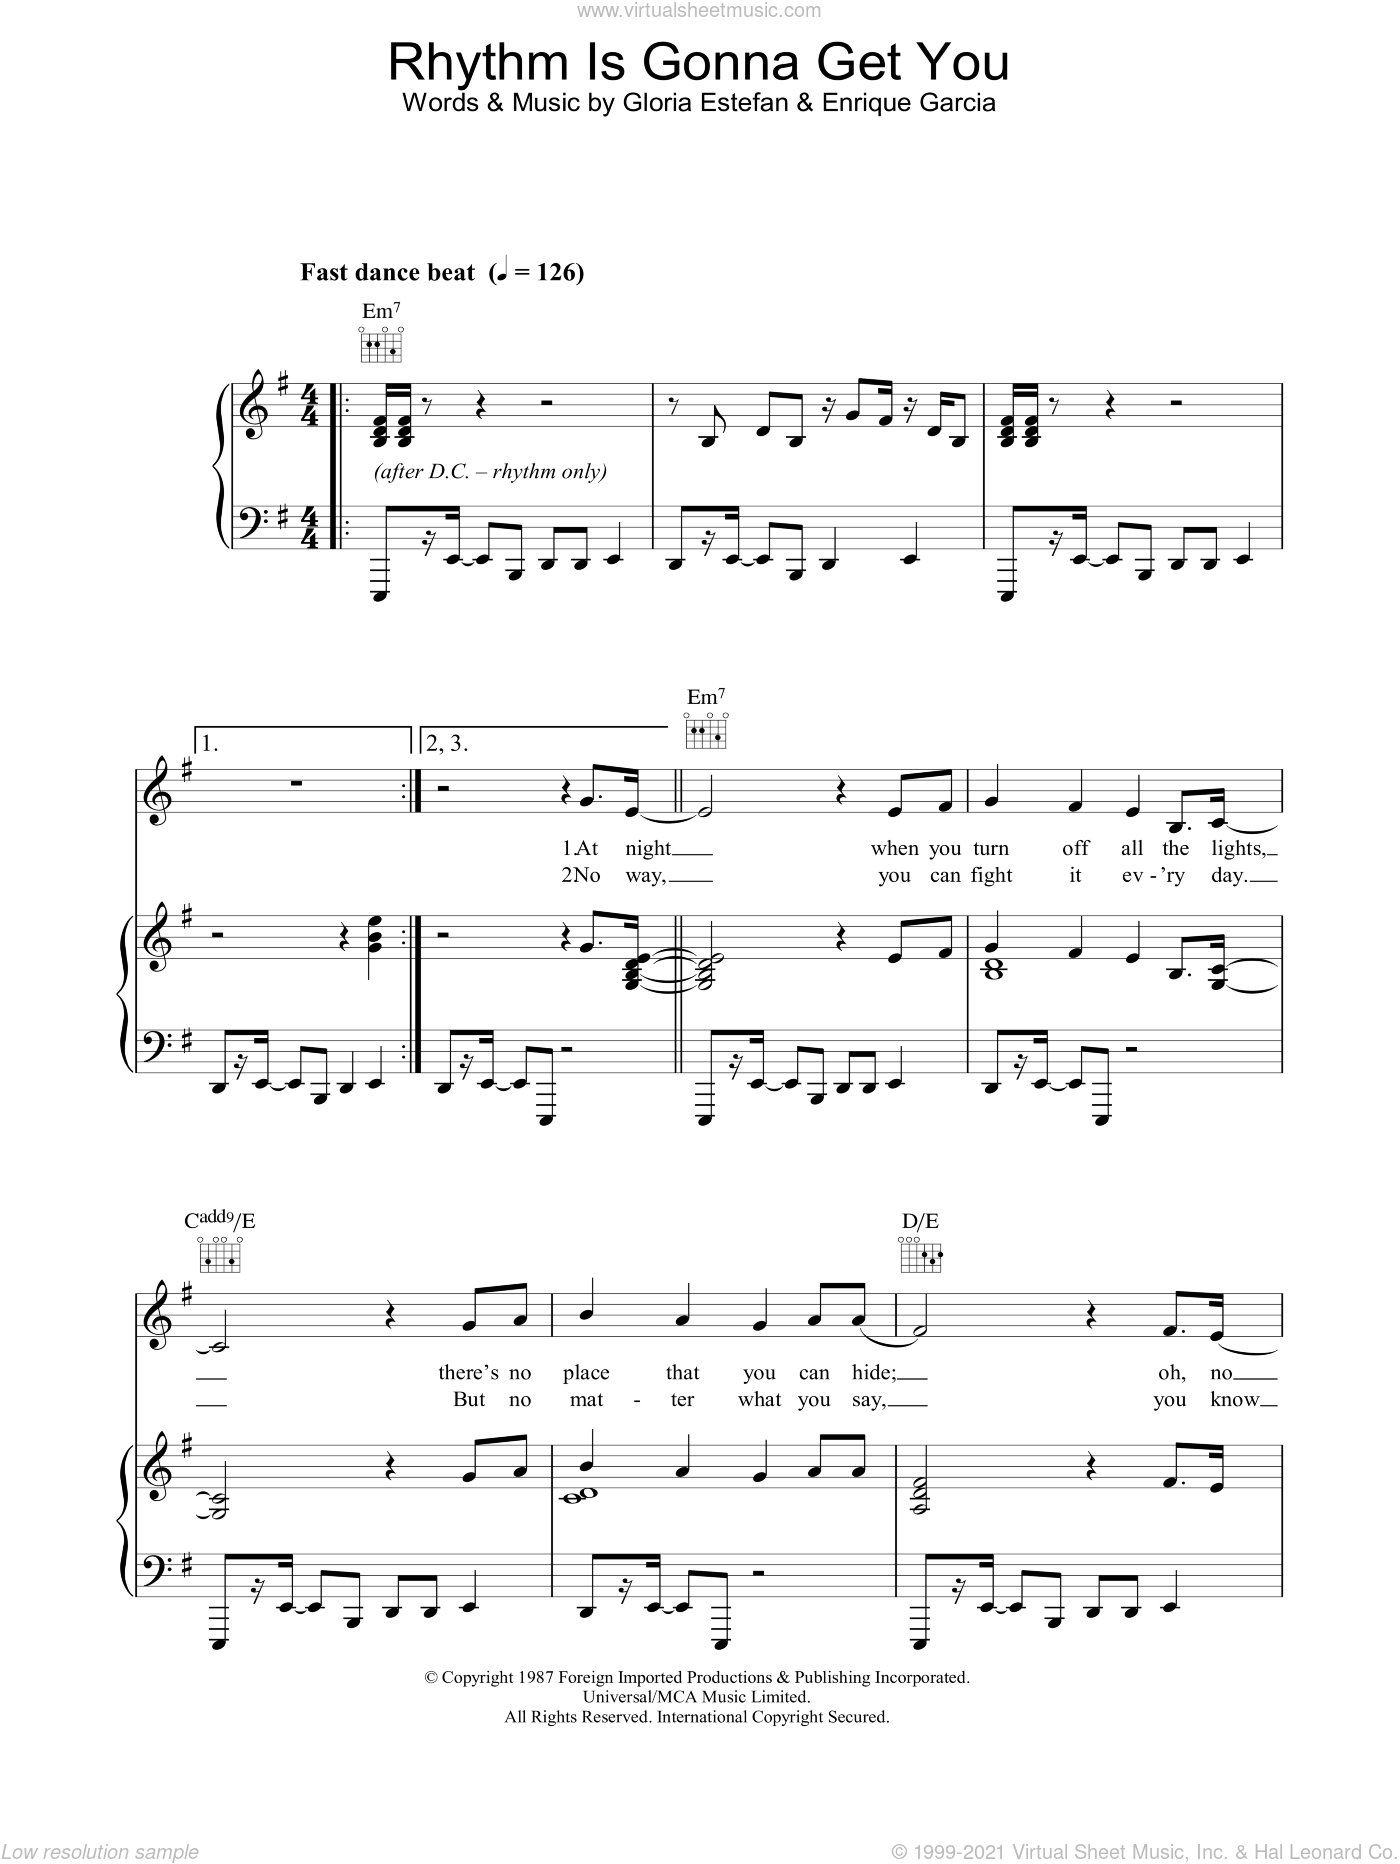 Rhythm Is Gonna Get You sheet music for voice, piano or guitar by Enrique Garcia